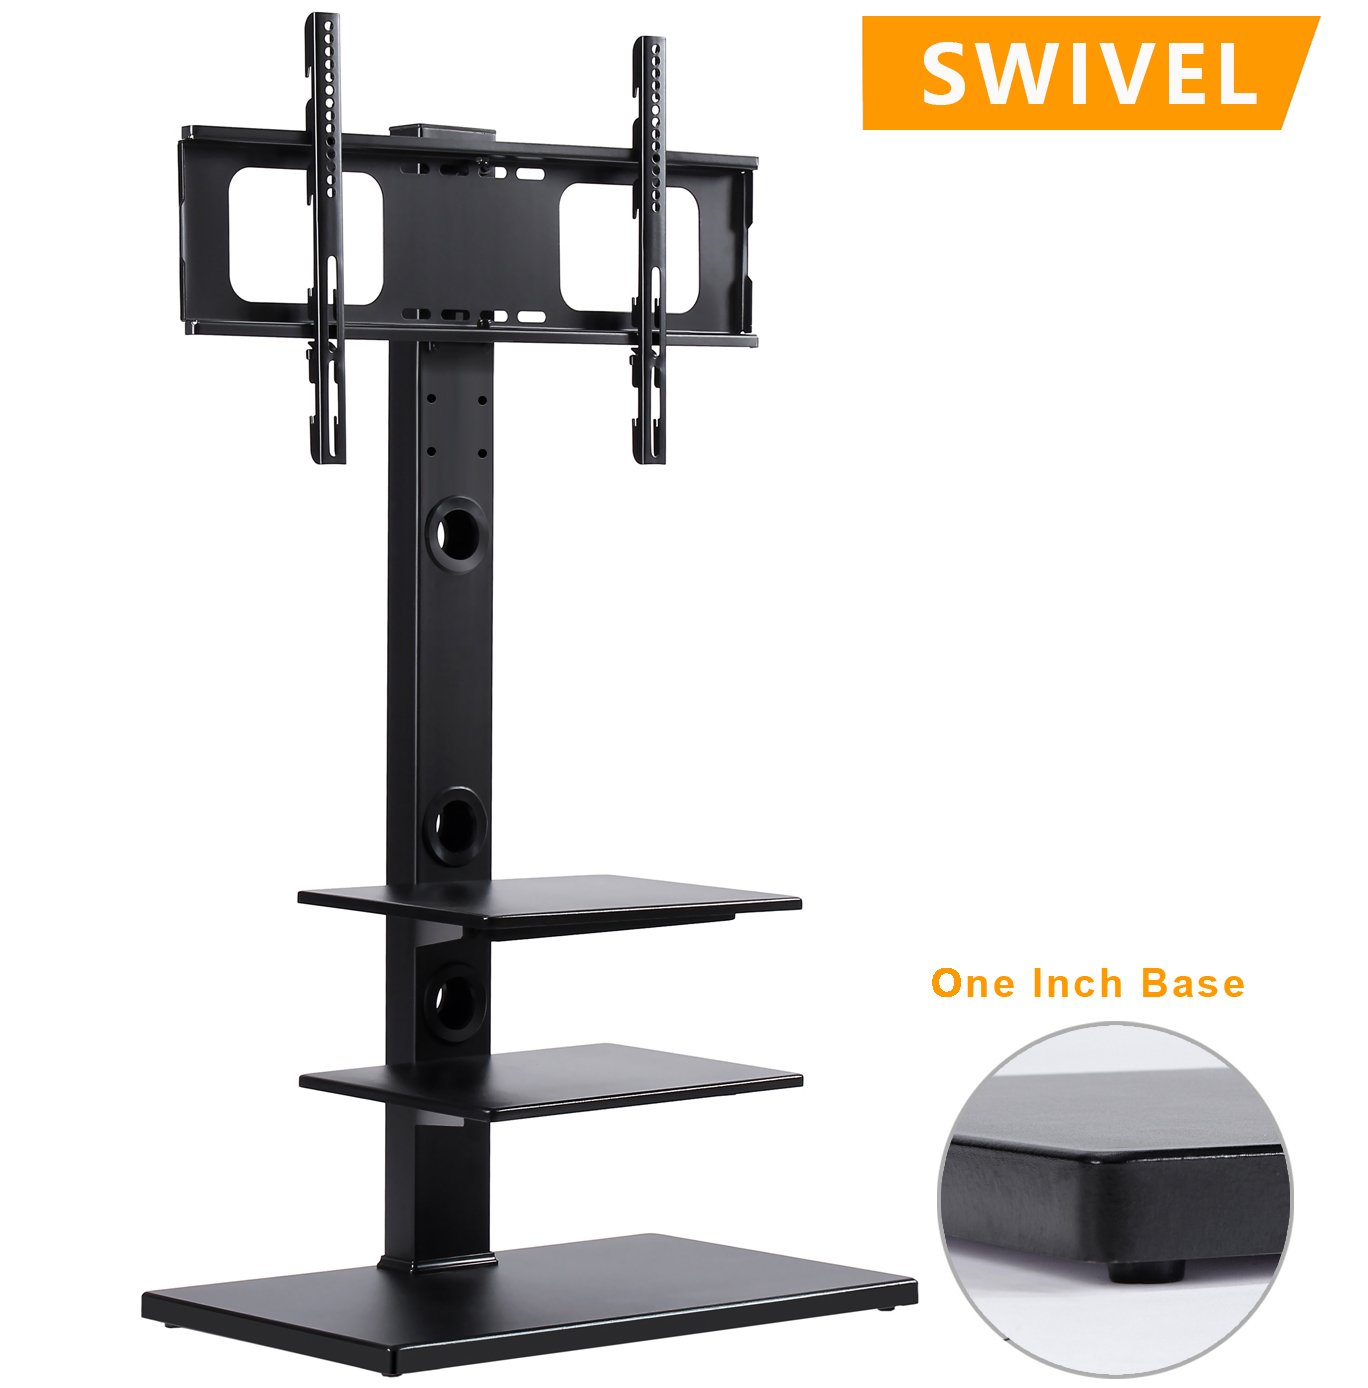 Rfiver Swivel Floor TV Stand with Mount and Three Shelves for 32 to 65 Inches Plasma LCD LED Flat or Curved Screen TVs, Black TF1002